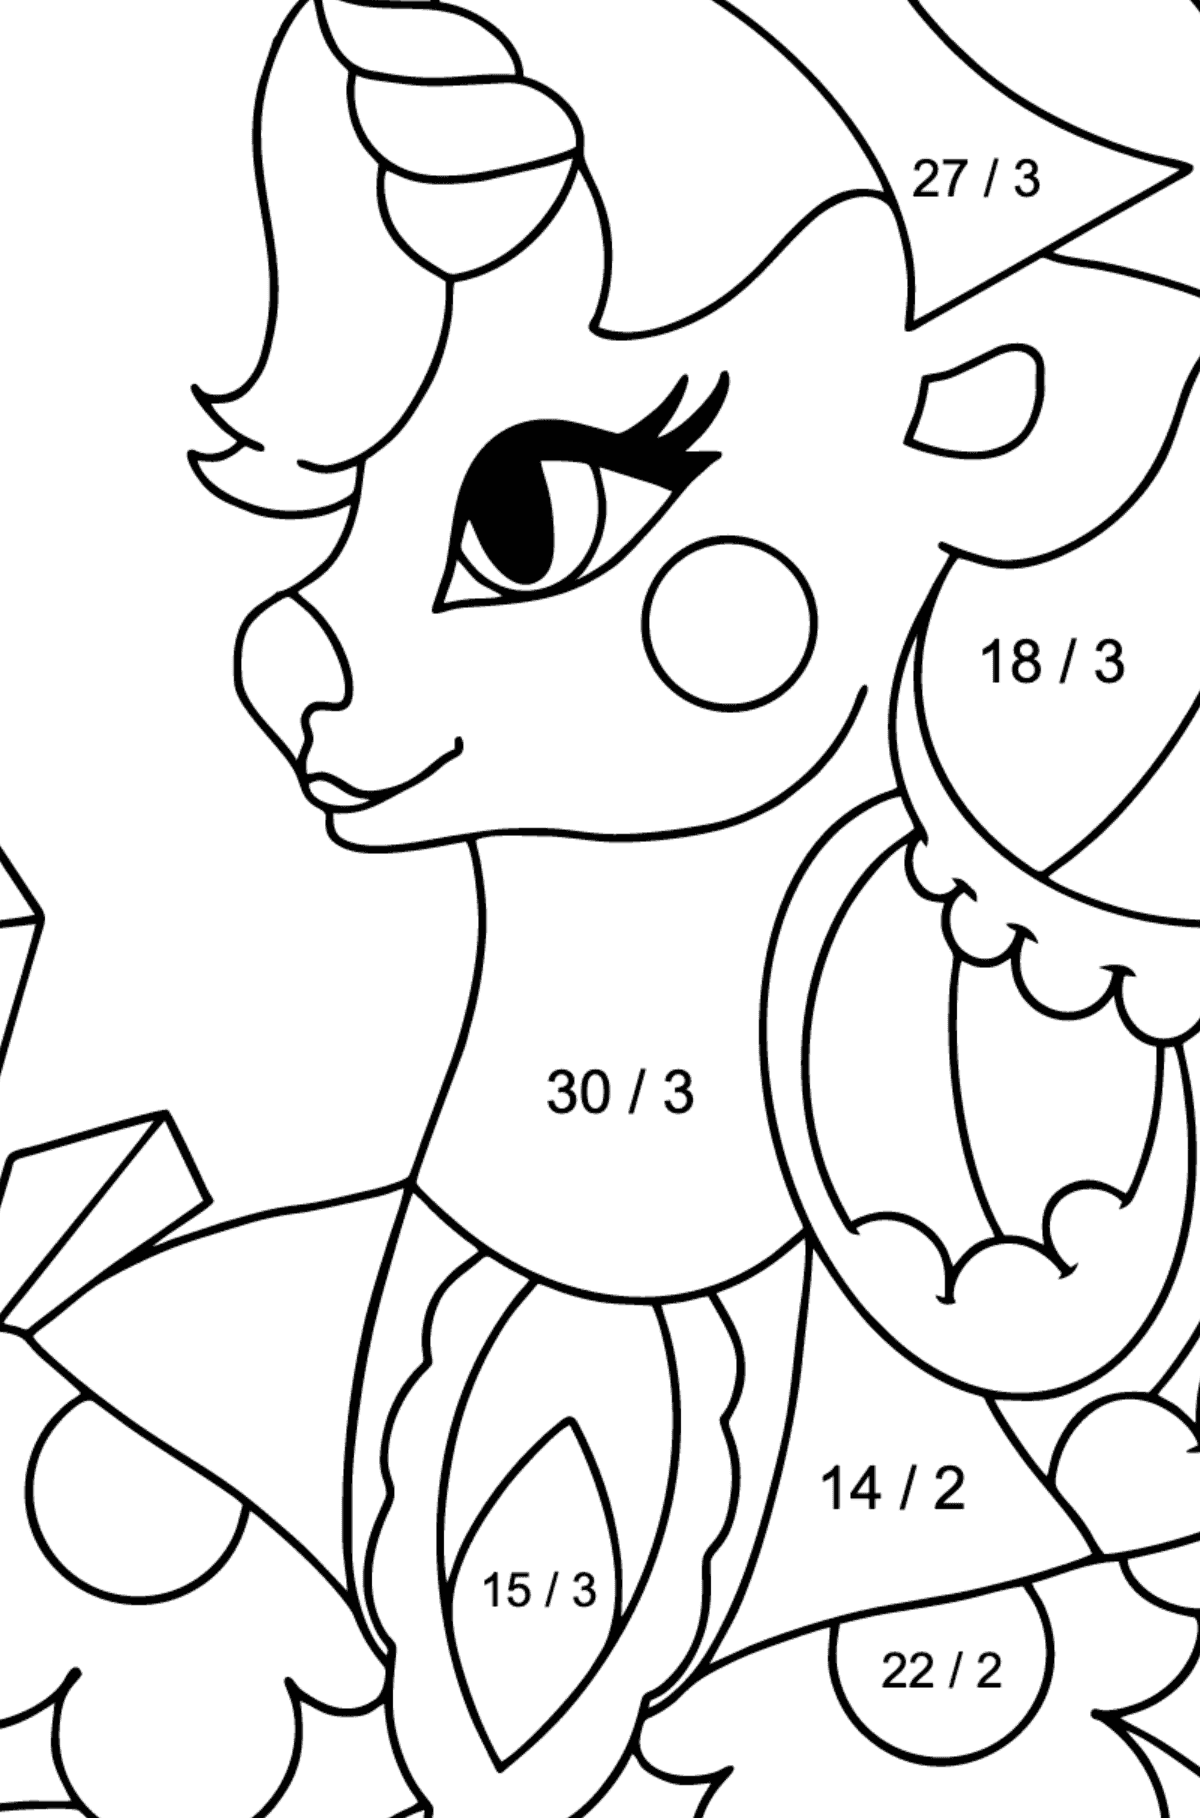 Simple Coloring Page - A Unicorn Queen for Kids  - Color by Number Division